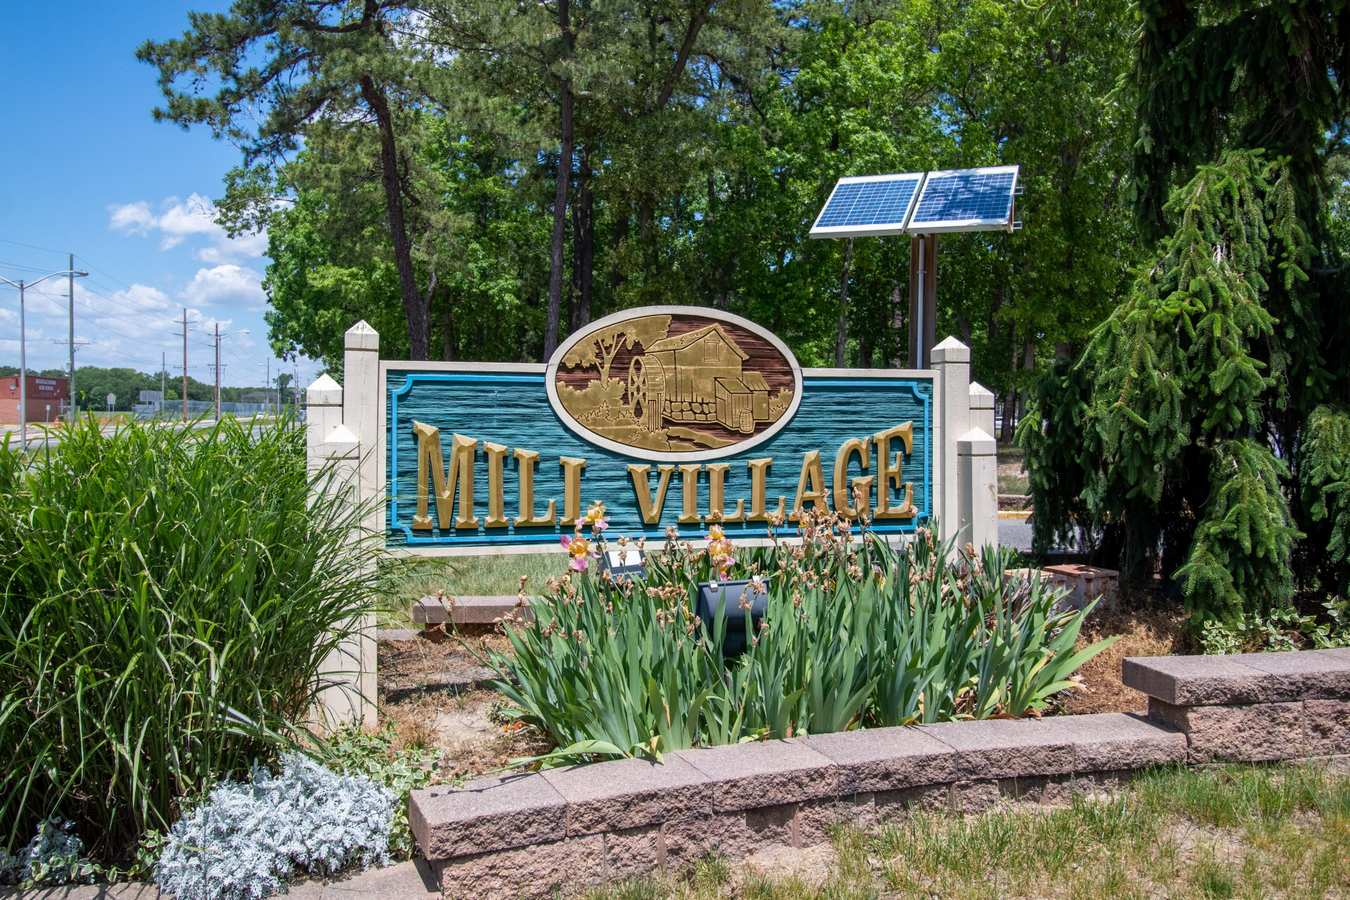 Sign at the entrance to Mill Village in Millville, New Jersey